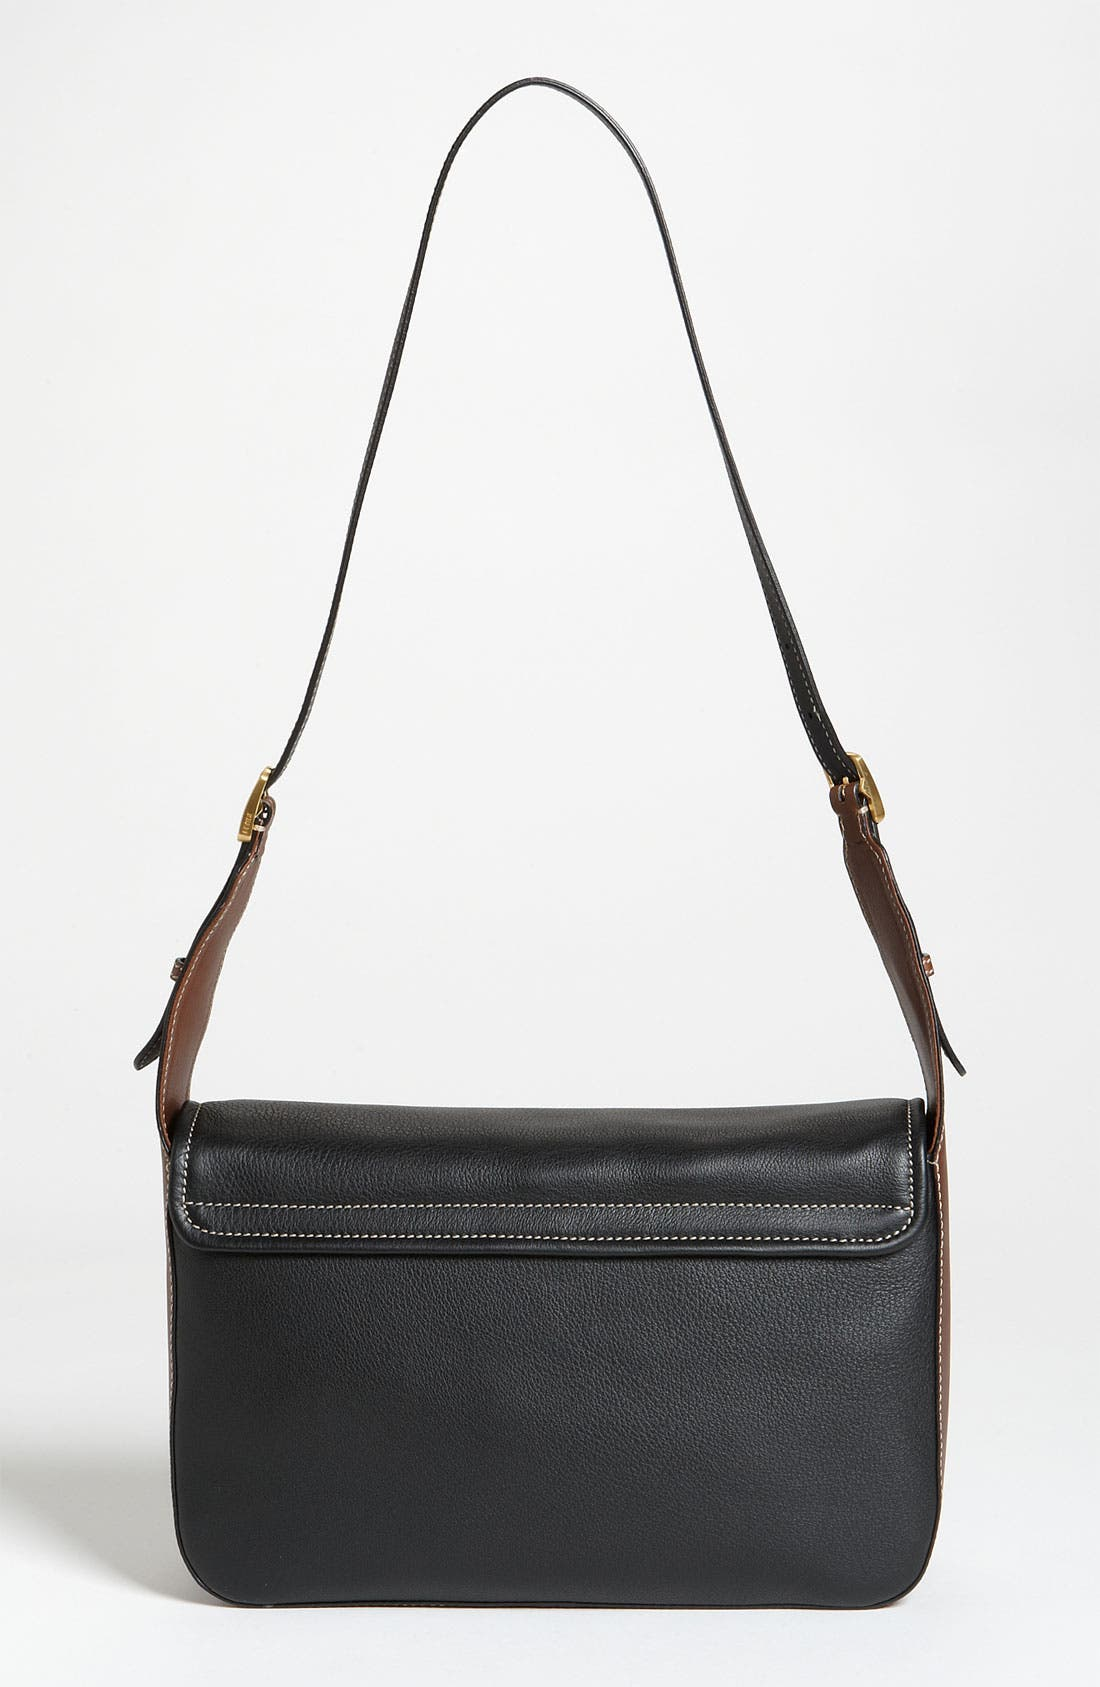 'Chameleon' Leather Shoulder Bag,                             Alternate thumbnail 2, color,                             001